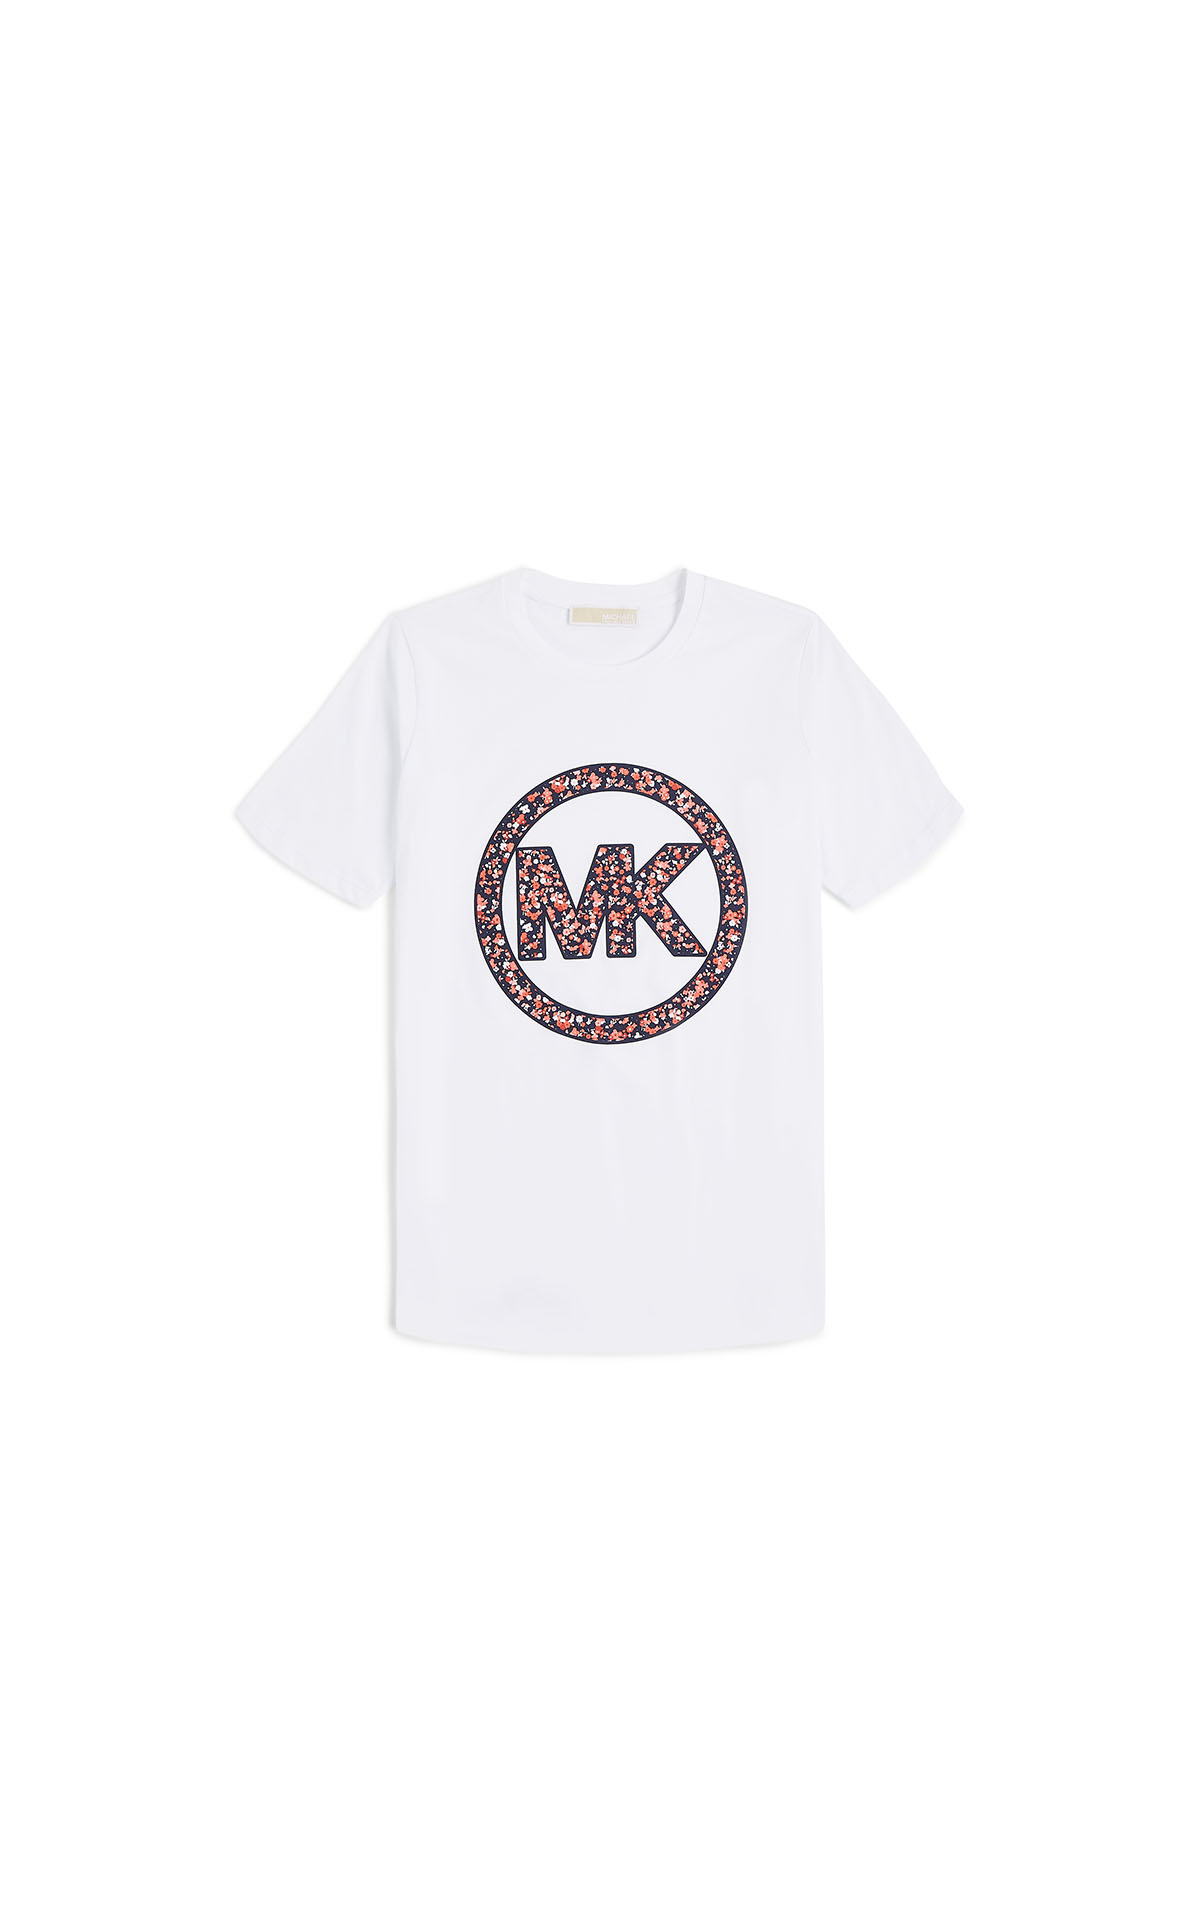 Michael Kors Logo Tee at the Bicester Village Shopping Collection